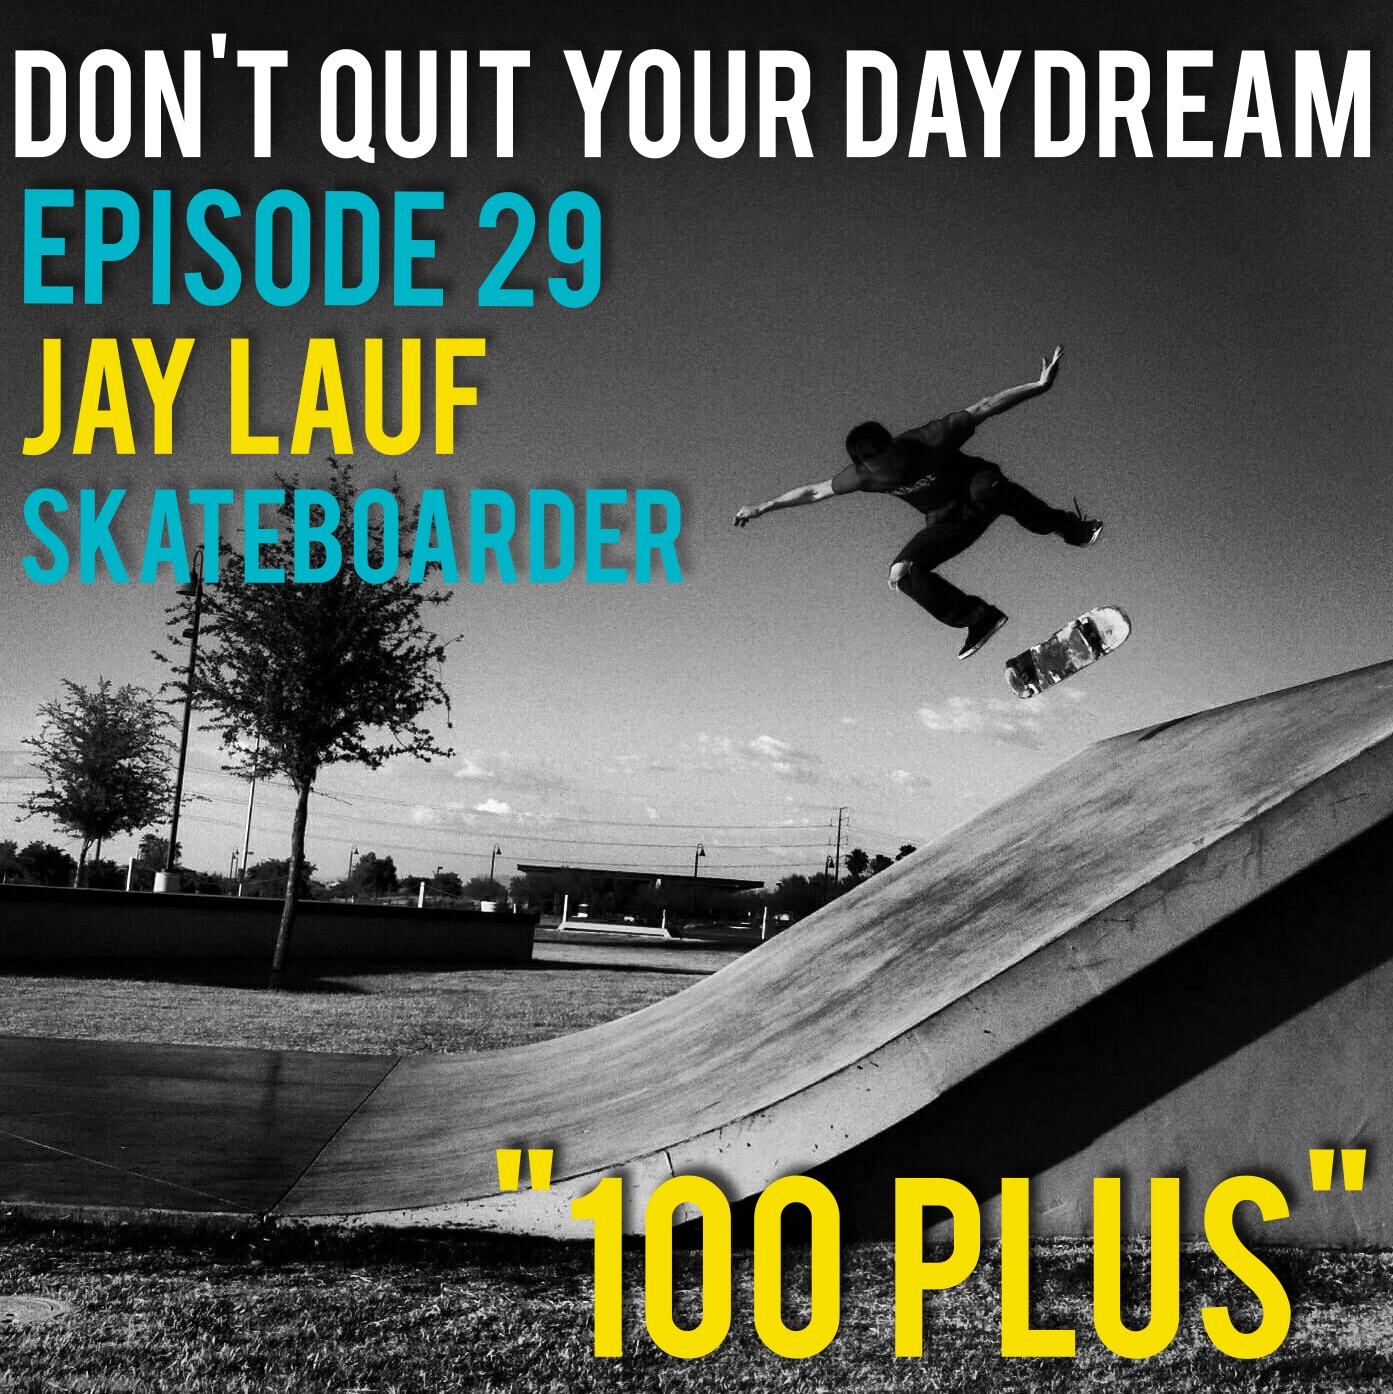 "Skateboarder Jay Lauf stops by to discuss the great times and friends he has made all because he decided to pick up a board. Jay brings up how deep skateboarding is integrated with the culture of music, fashion and more. We talk about trespassing tickets, breaking bones and the process of learning new tricks. Follow Jay along on his skateboarding adventures:   https://youtu.be/WnZuJ3yNKIg   and   https://youtu.be/9f3cYeZhD2E  .  Song of the week: James Wallwork of last week's Stella shares with us his beautiful post rock song ""Lavender"". This track is truly wonderful so make sure to check it out!"